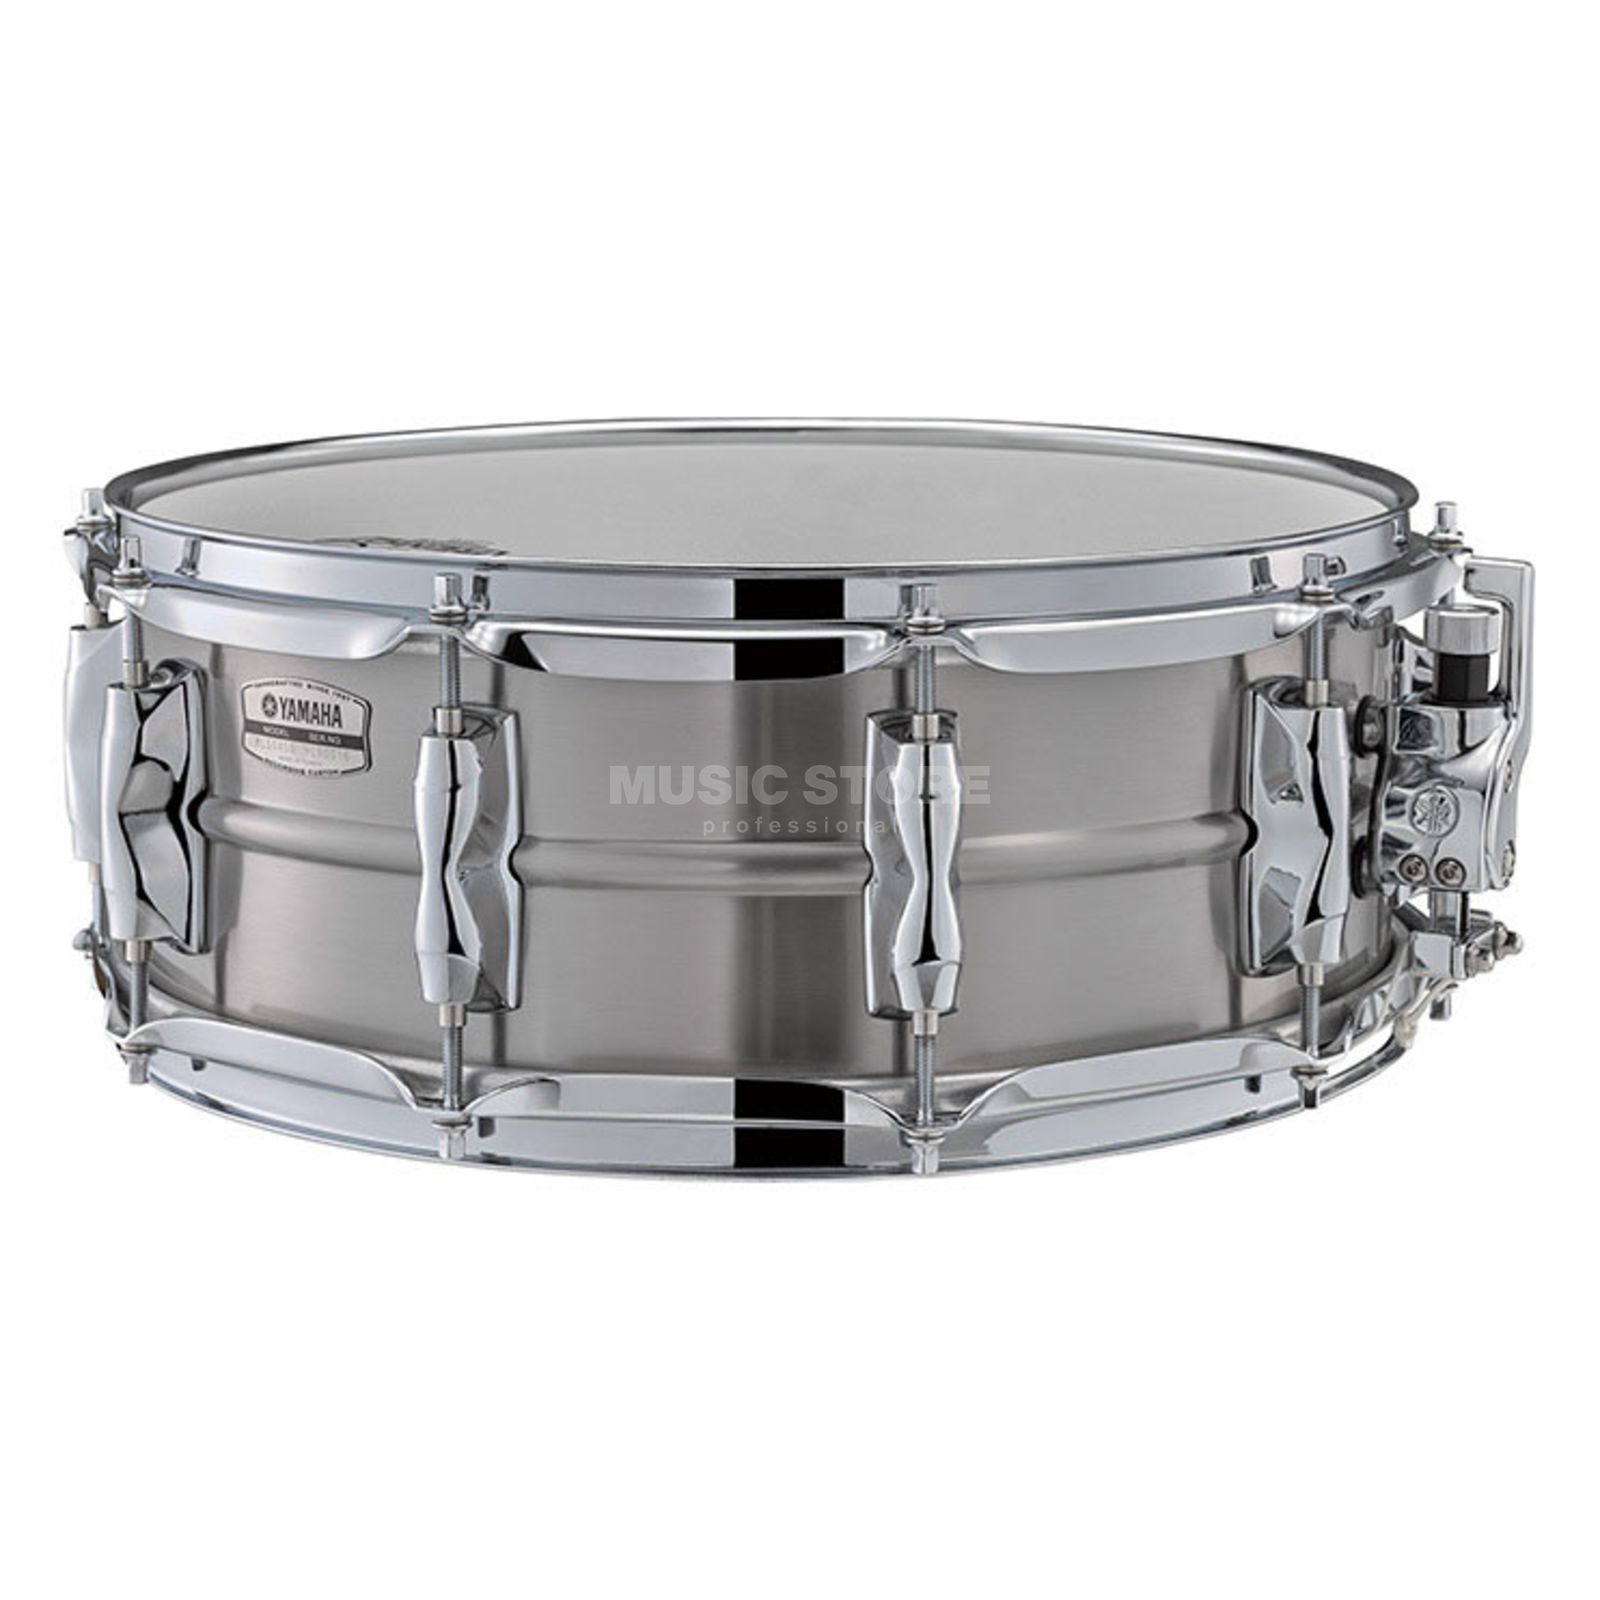 "Yamaha Recording Custom Snare 14""x5,5"", Steel Product Image"